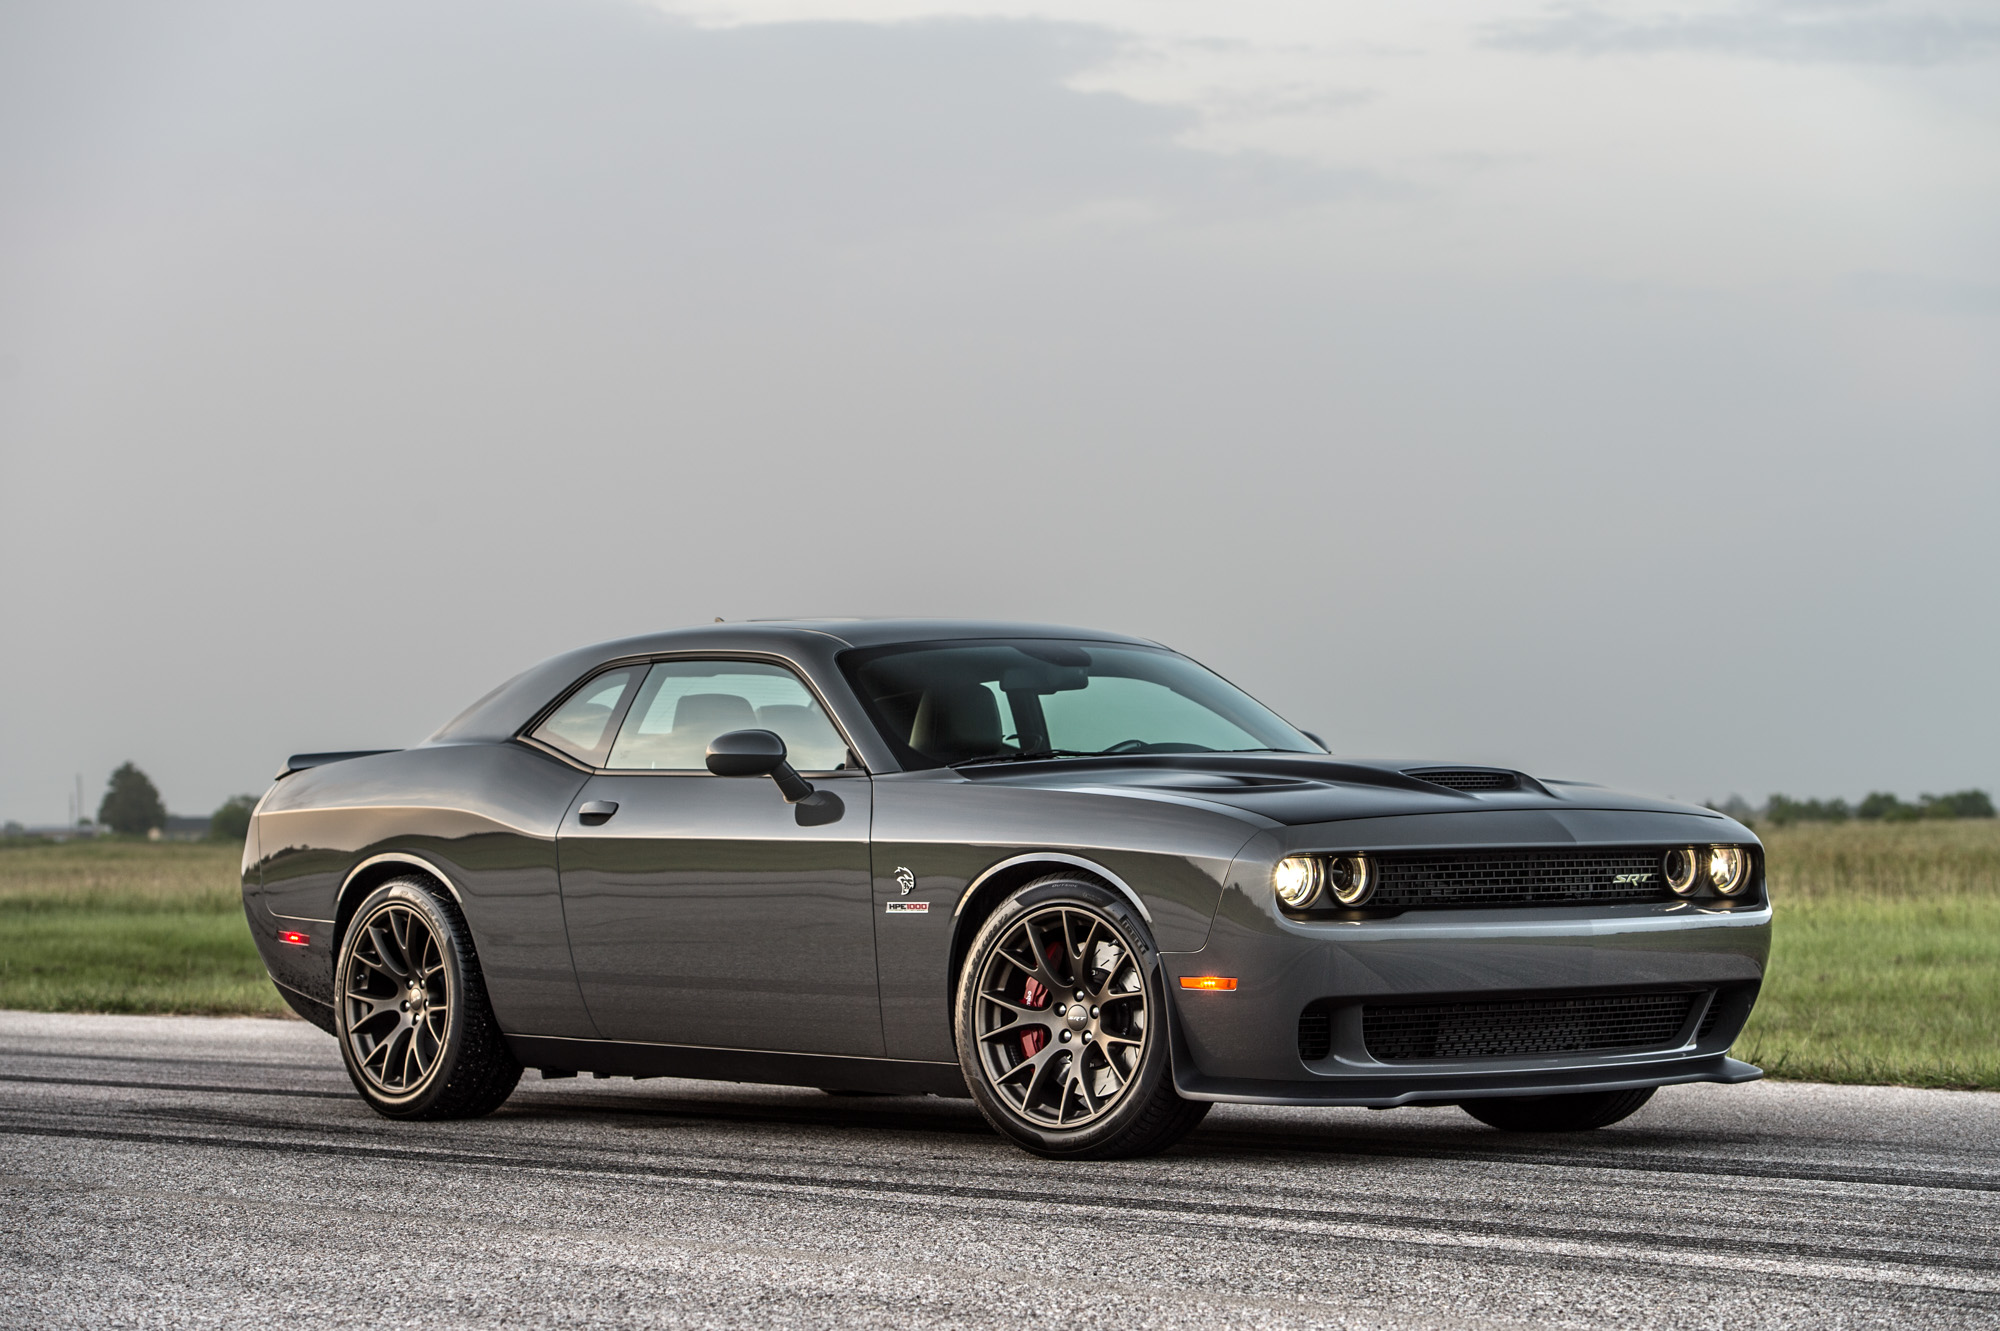 Hellcat Hpe Grey Challenger on 4 9 Cadillac Engine Performance